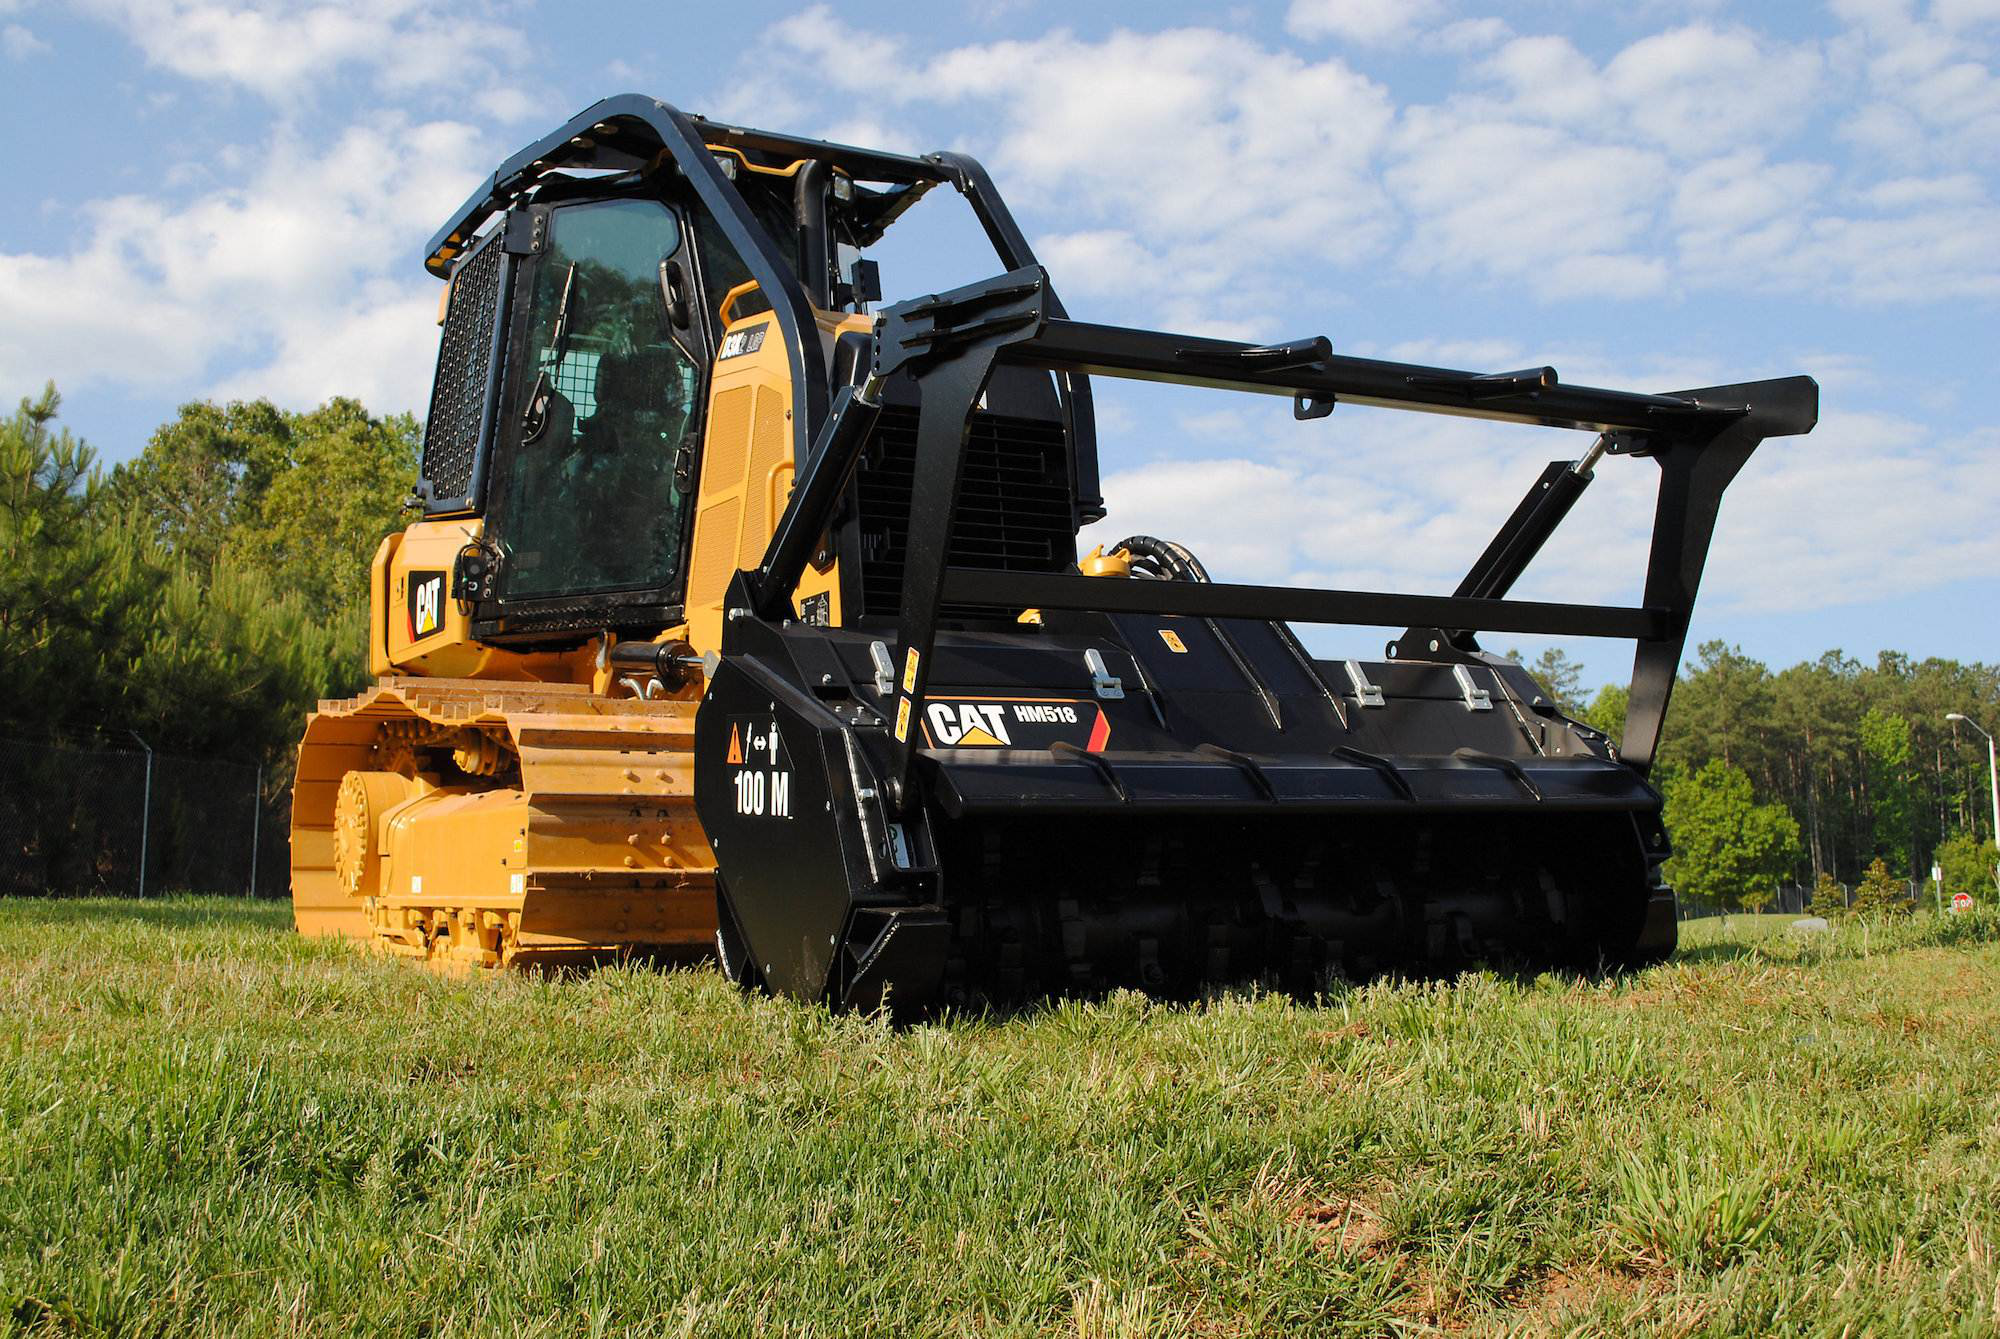 Cat Intros D3k2 Mulcher A Factory Built Dozer Config With